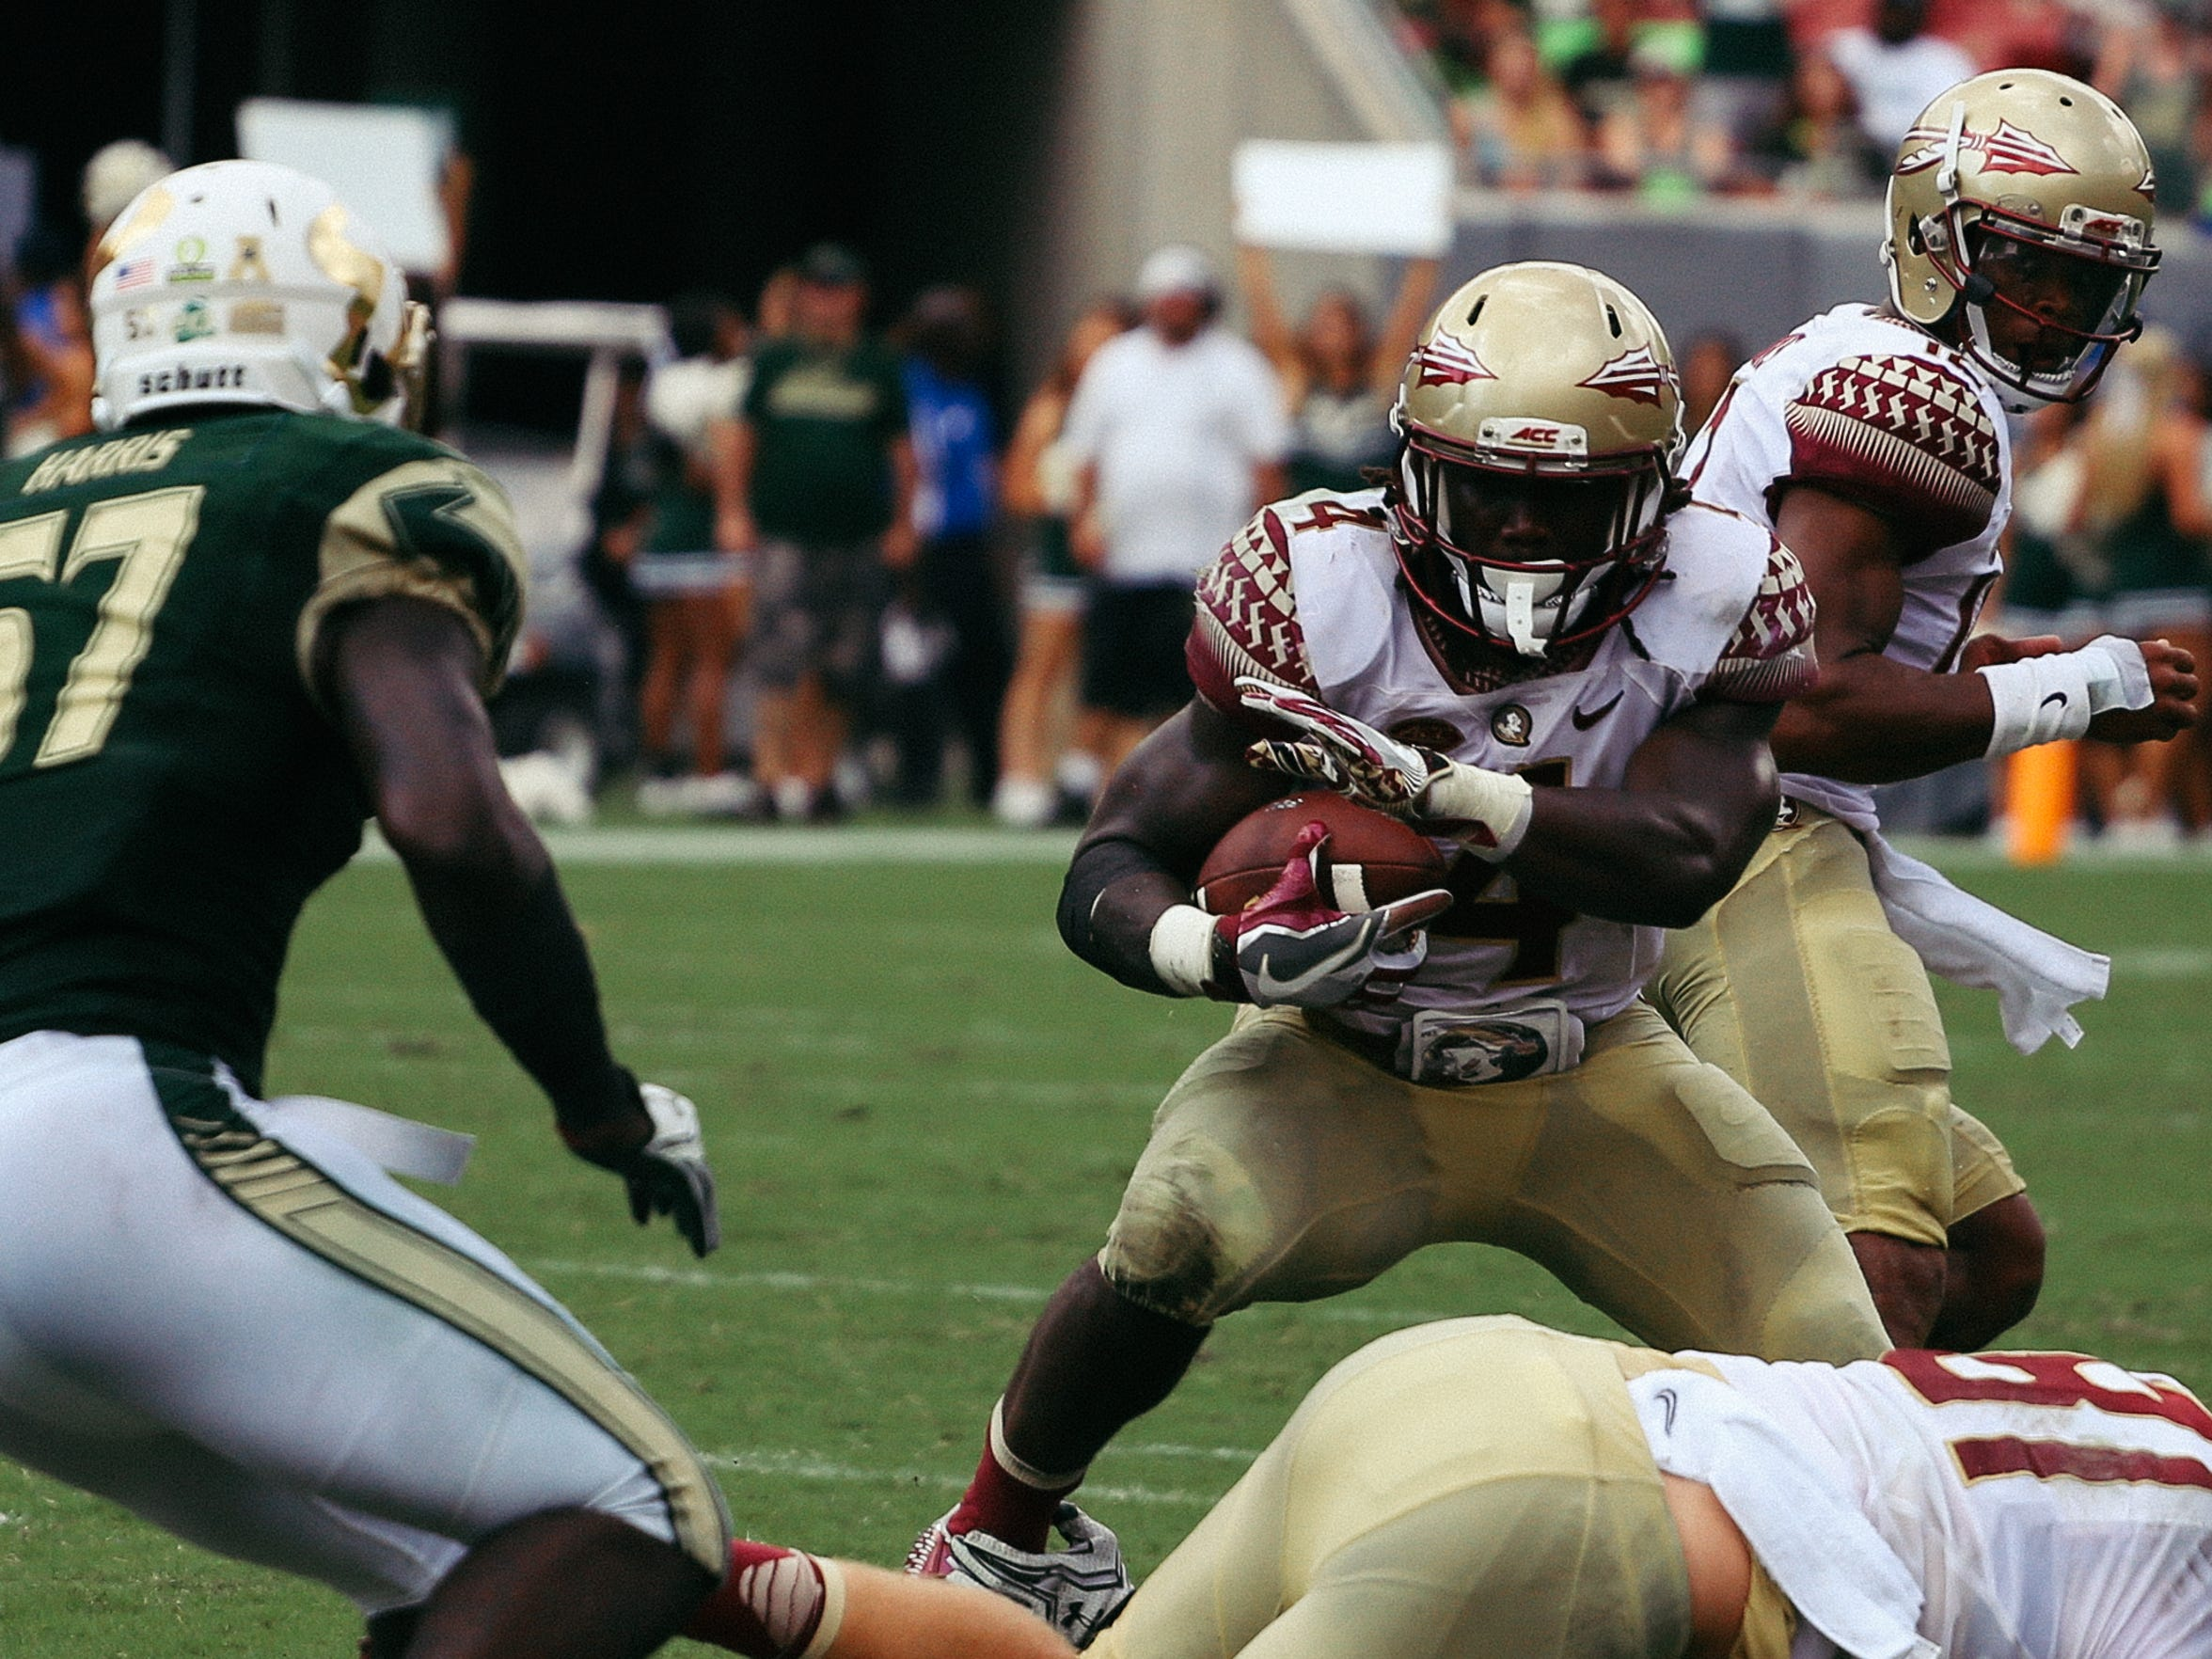 Cook's 267 yards rushing is the second-most all-time at FSU for a single game performance.